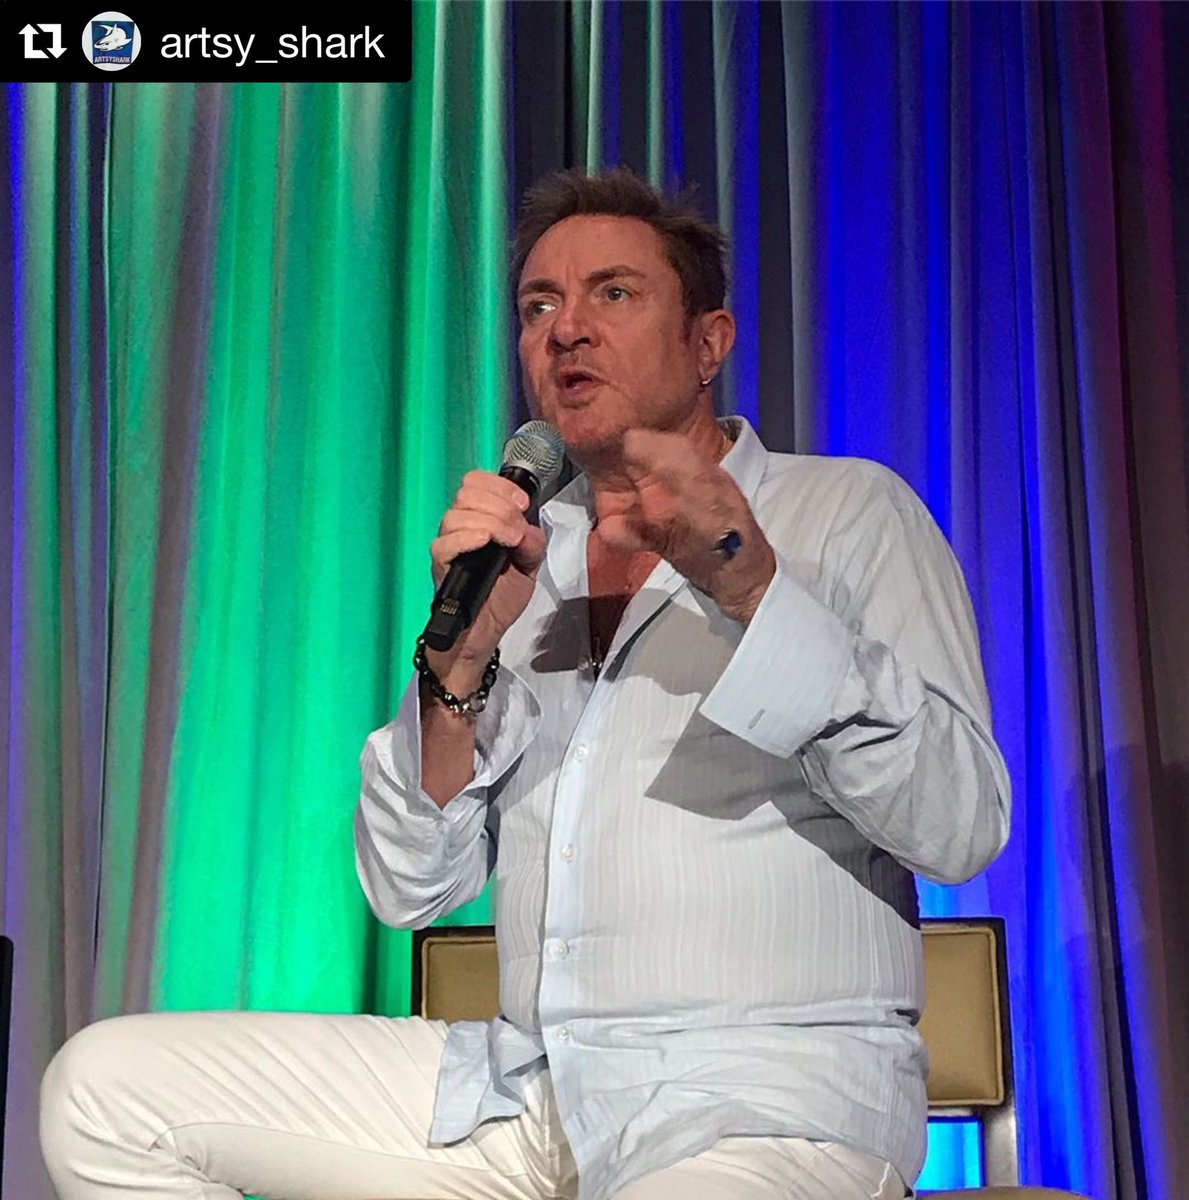 #Repost @artsy_shark  ・・・ Brevard County Cultural Alliance Summit today presents talks for artists, nonprofits and businesses involved in the creative economy. Special lunchtime guest Simon LeBon gives an intimate interview.<br>http://pic.twitter.com/9Woe8BHeK7